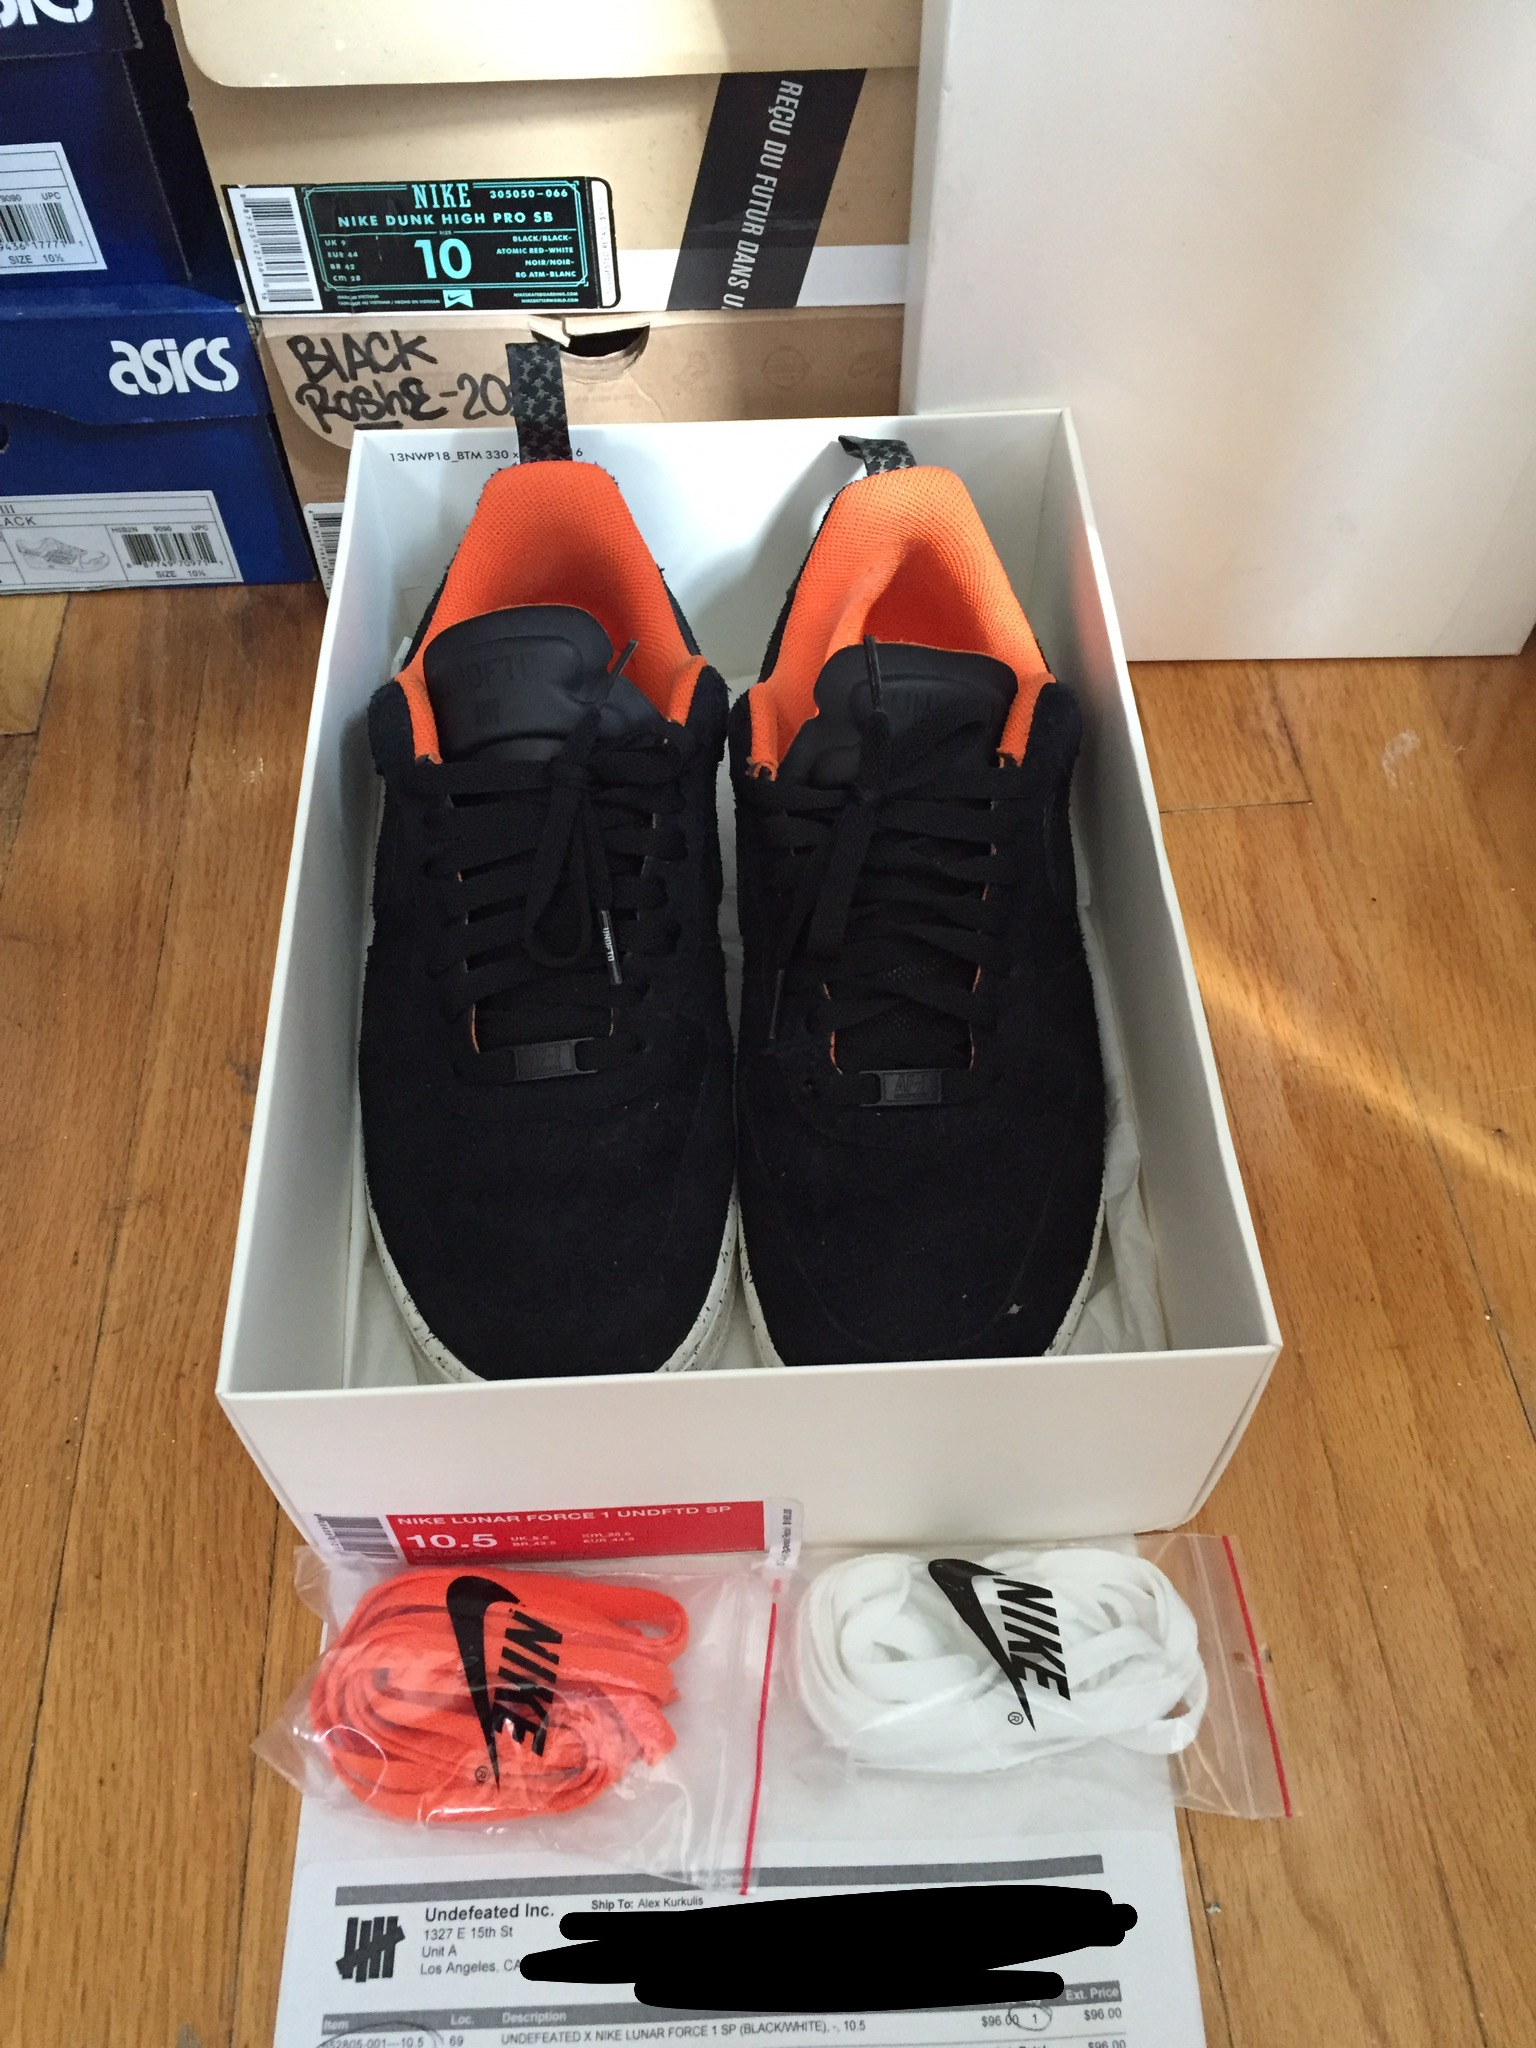 Nike Sole X Force Undefeated 1 Lunar Air rxshtQdC